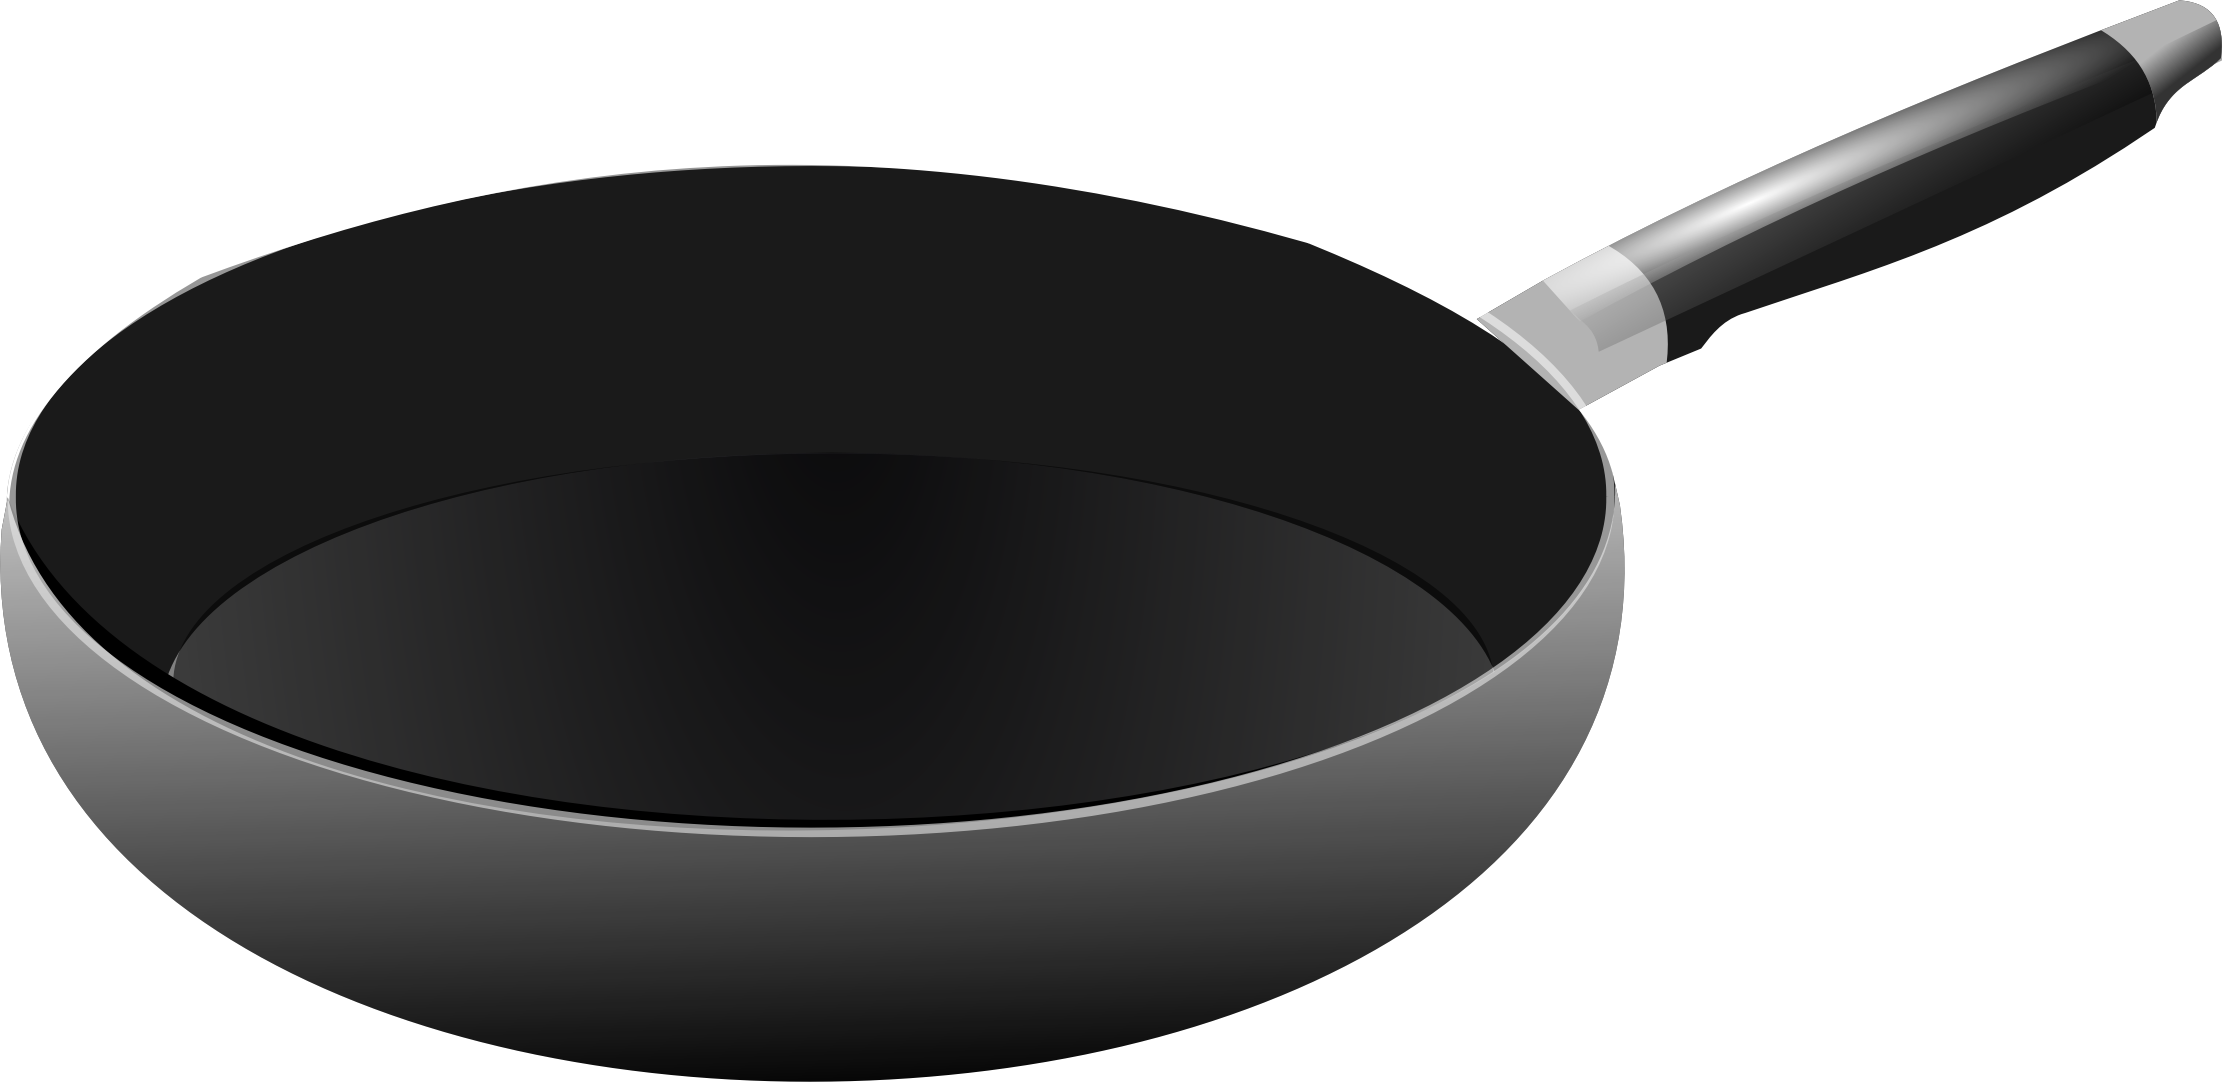 Transparent png pictures free. Fries clipart hot frying pan